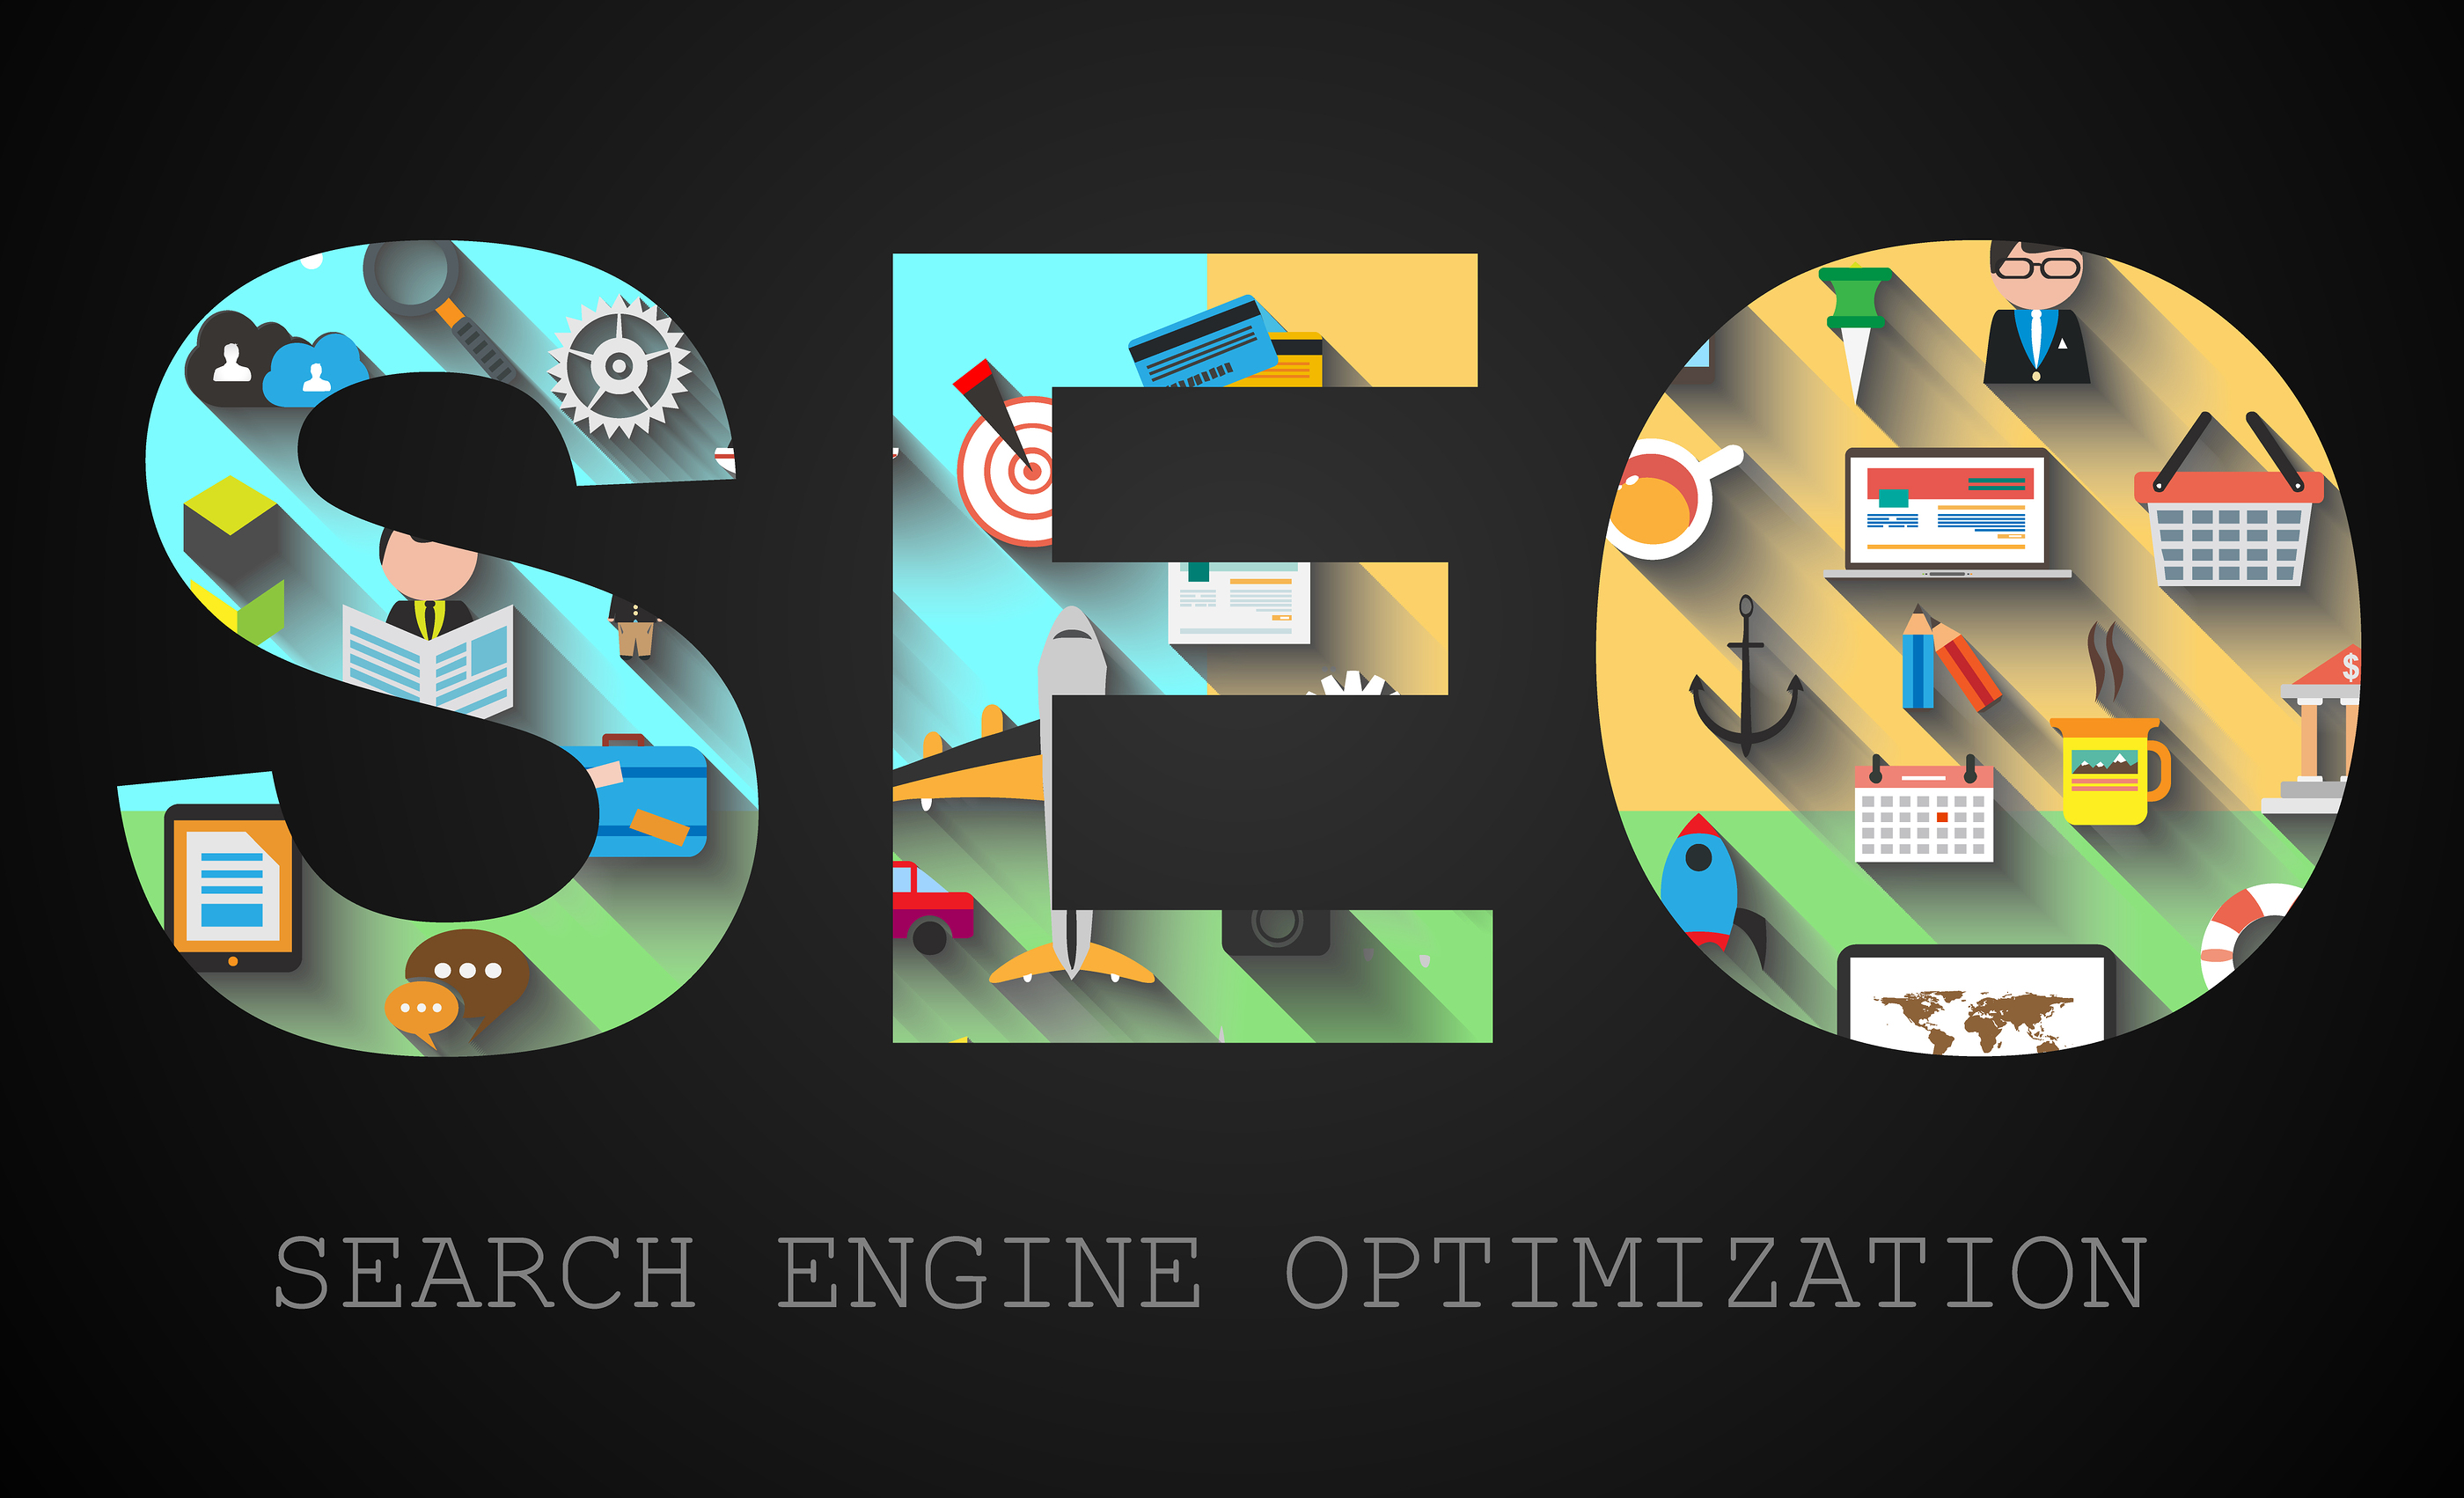 SEO Search engine optimization concept with Flat design and a lo